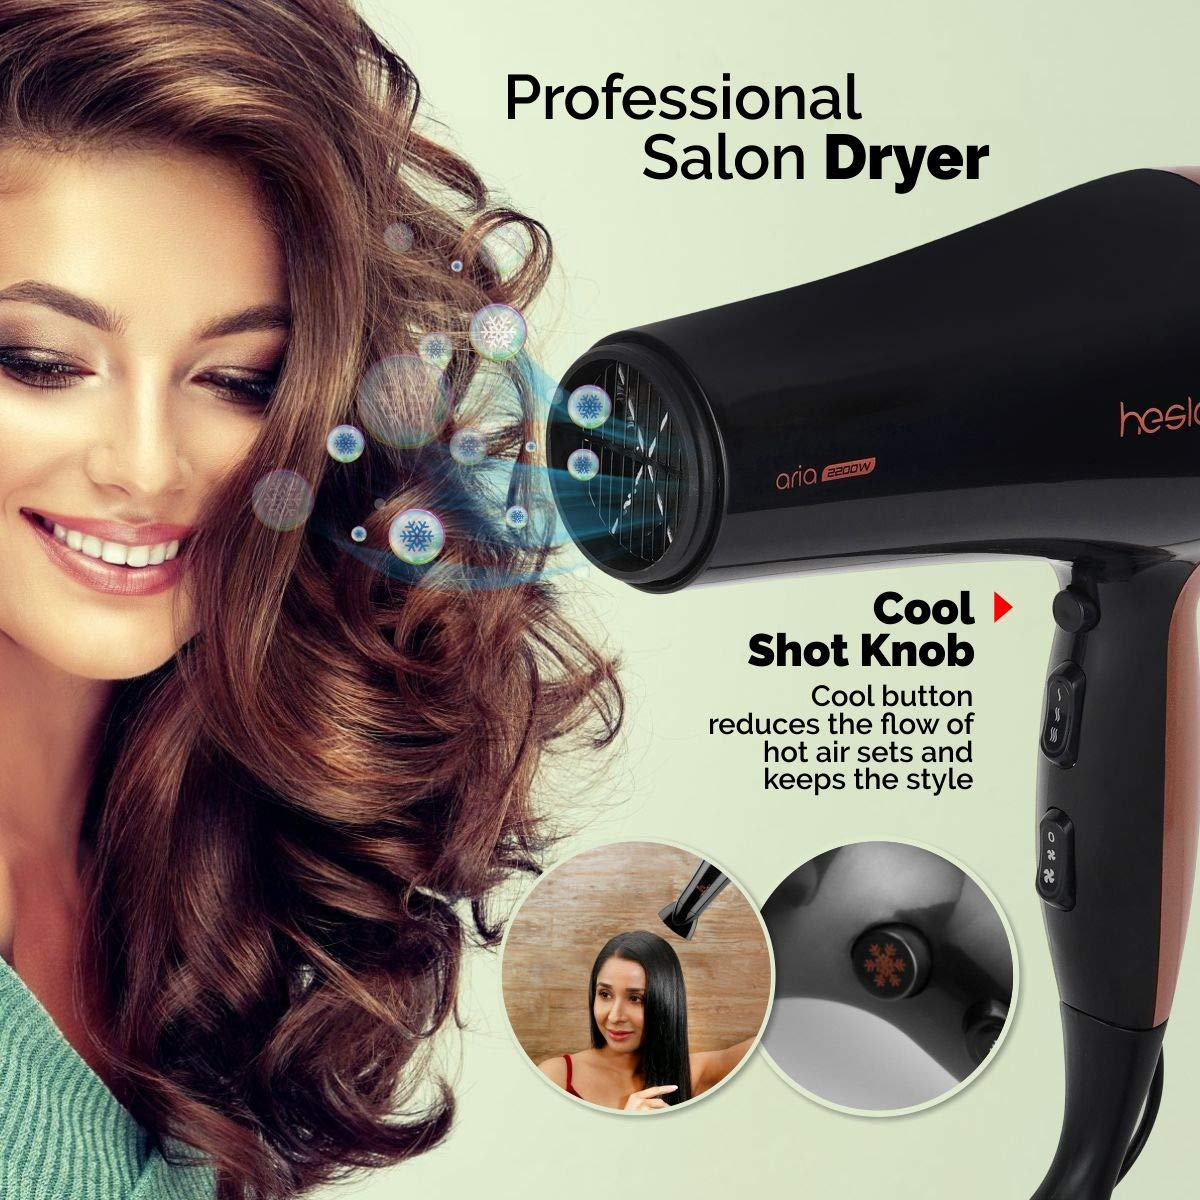 ARIA PROFESSIONAL HAIR DRYER 2200 W WITH COOL SHOT KNOB